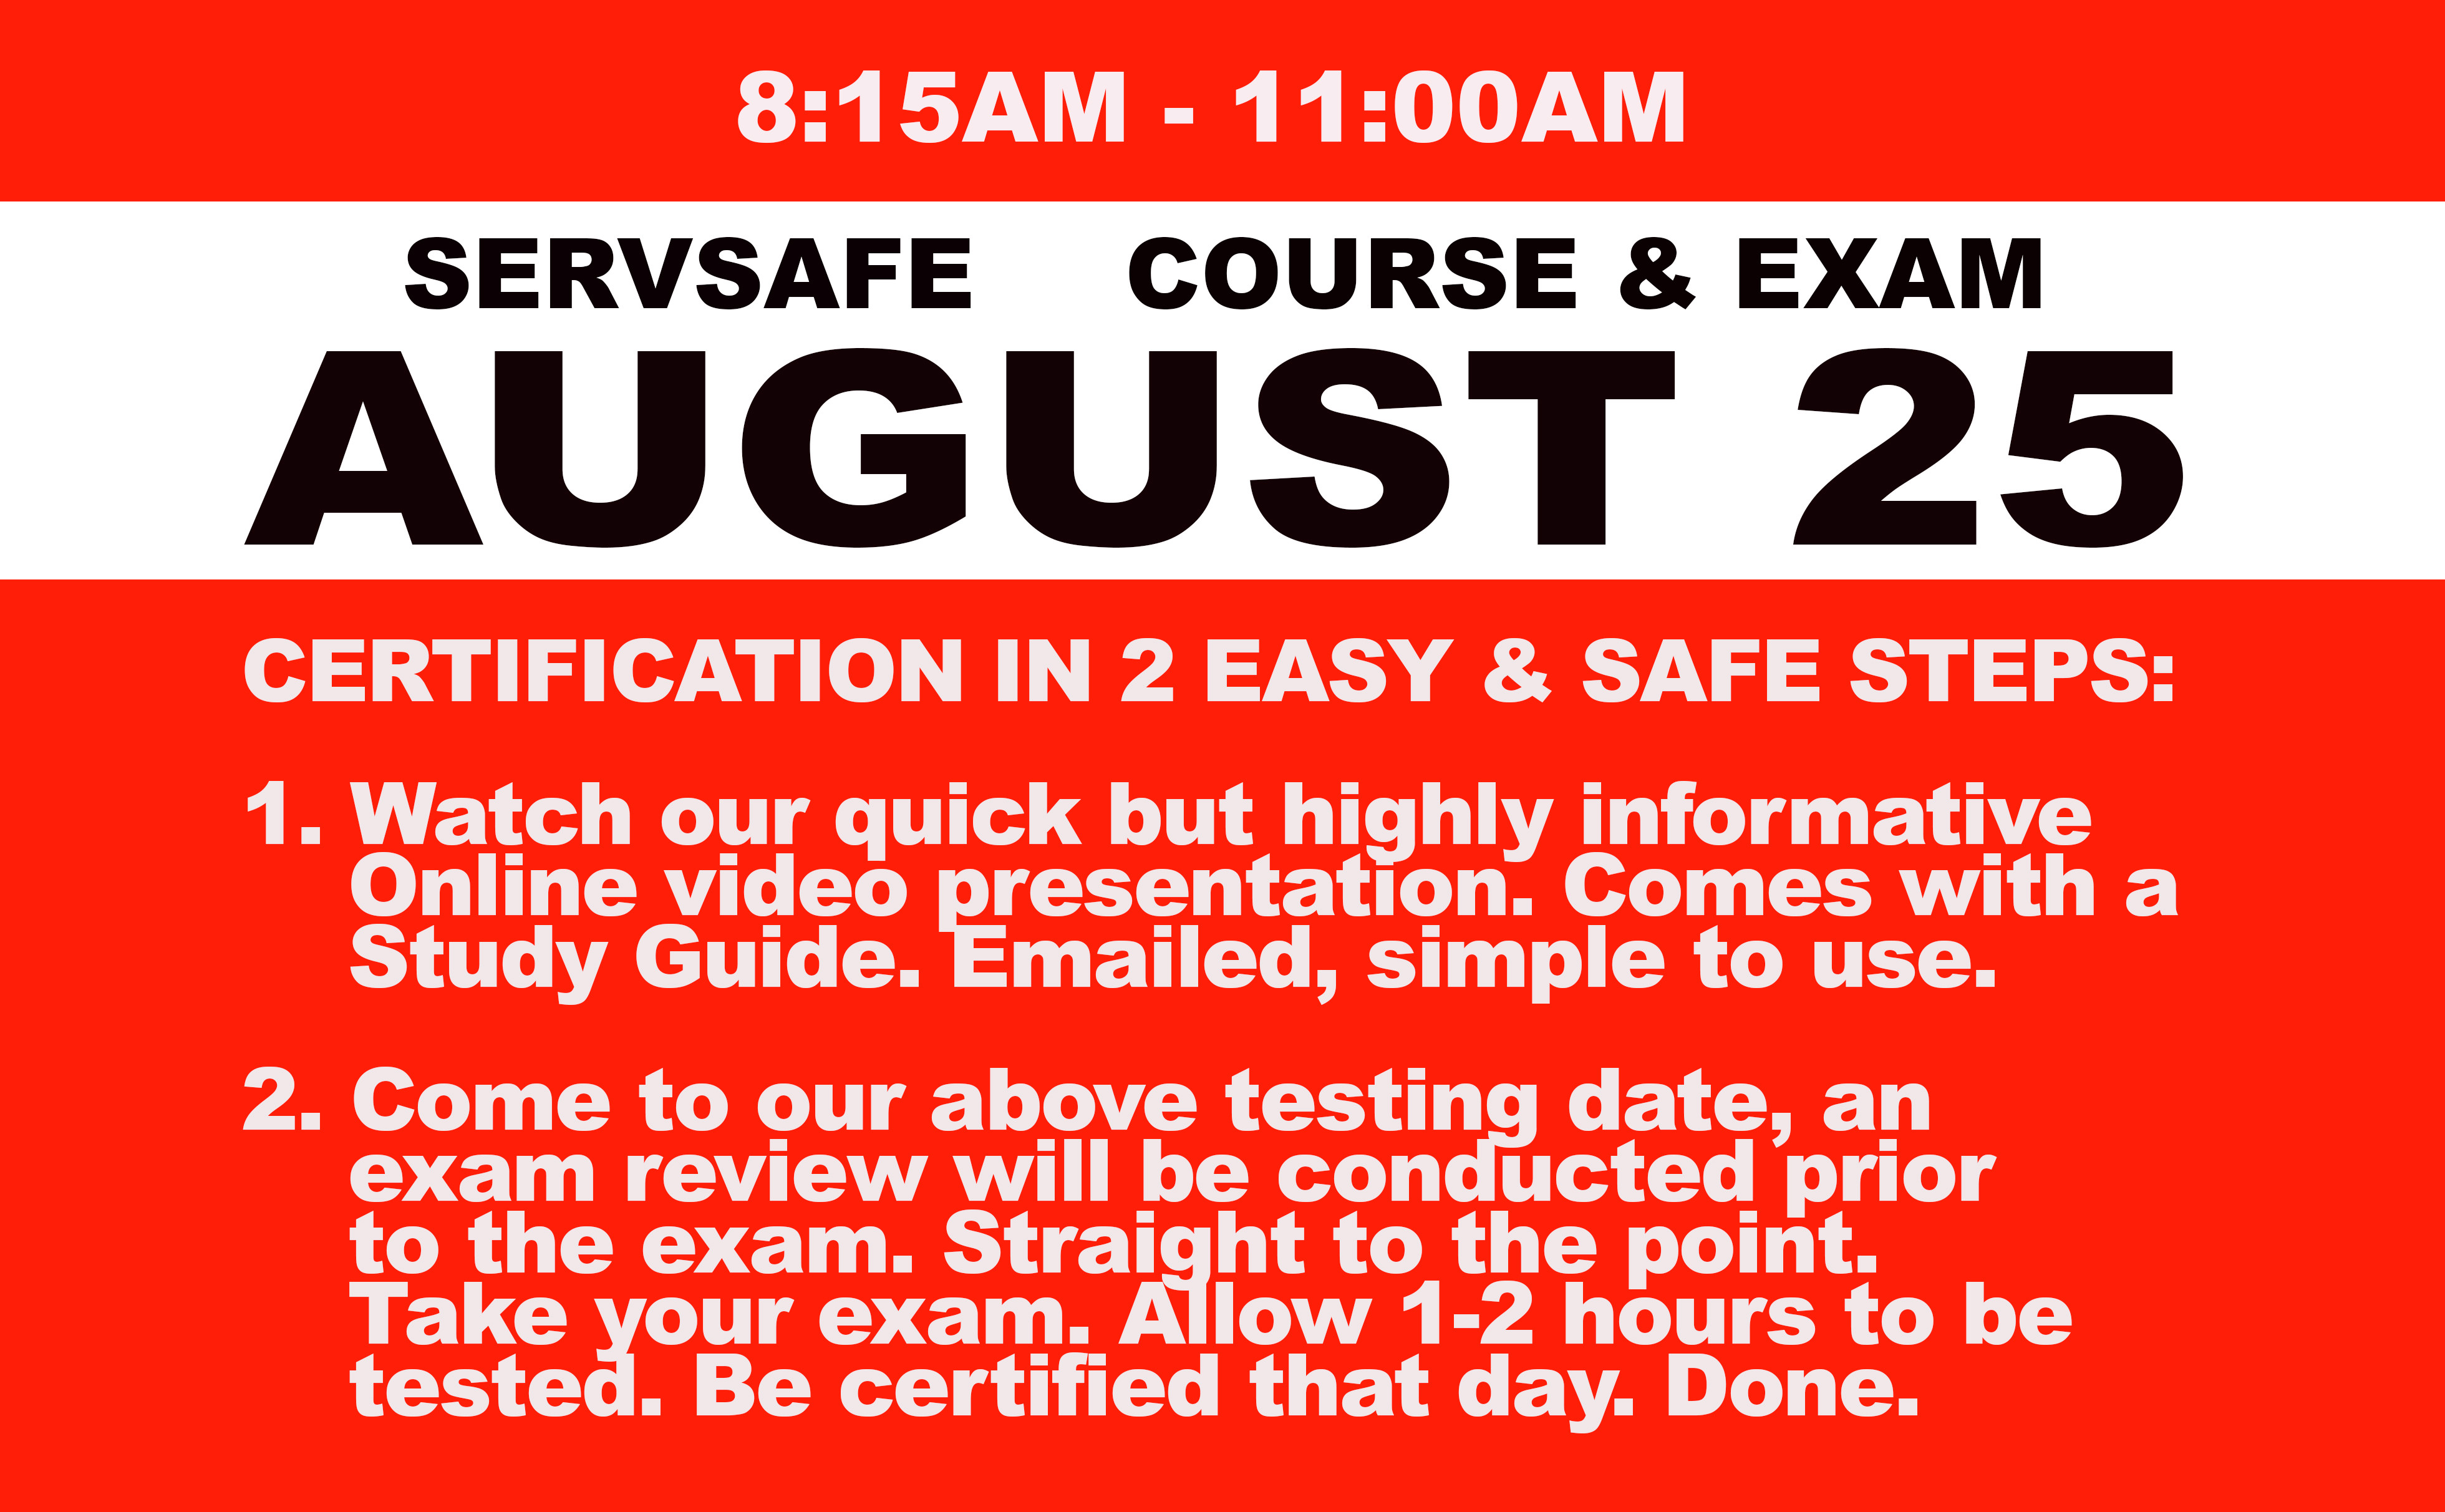 Online Course + Exam  Wed. August 25th